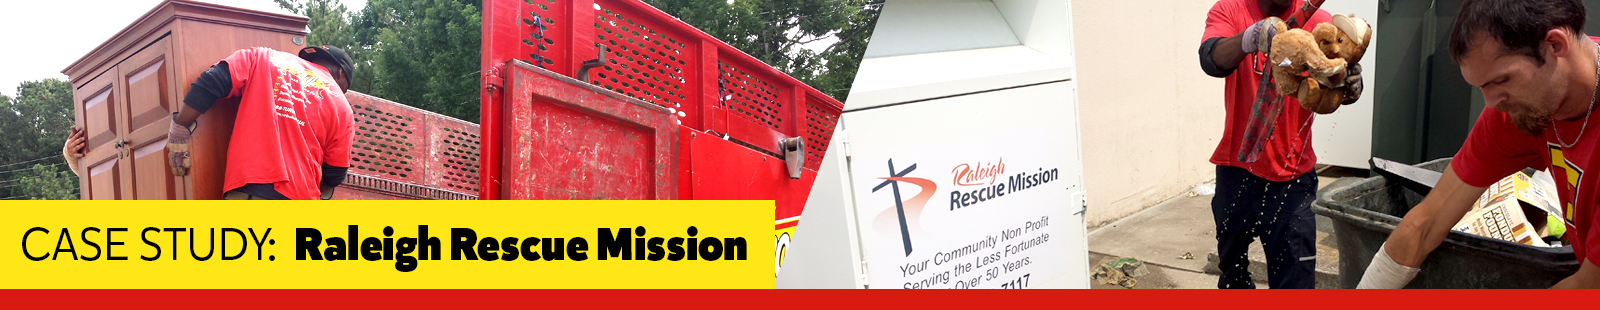 CASE STUDY:  Raleigh Rescue Mission